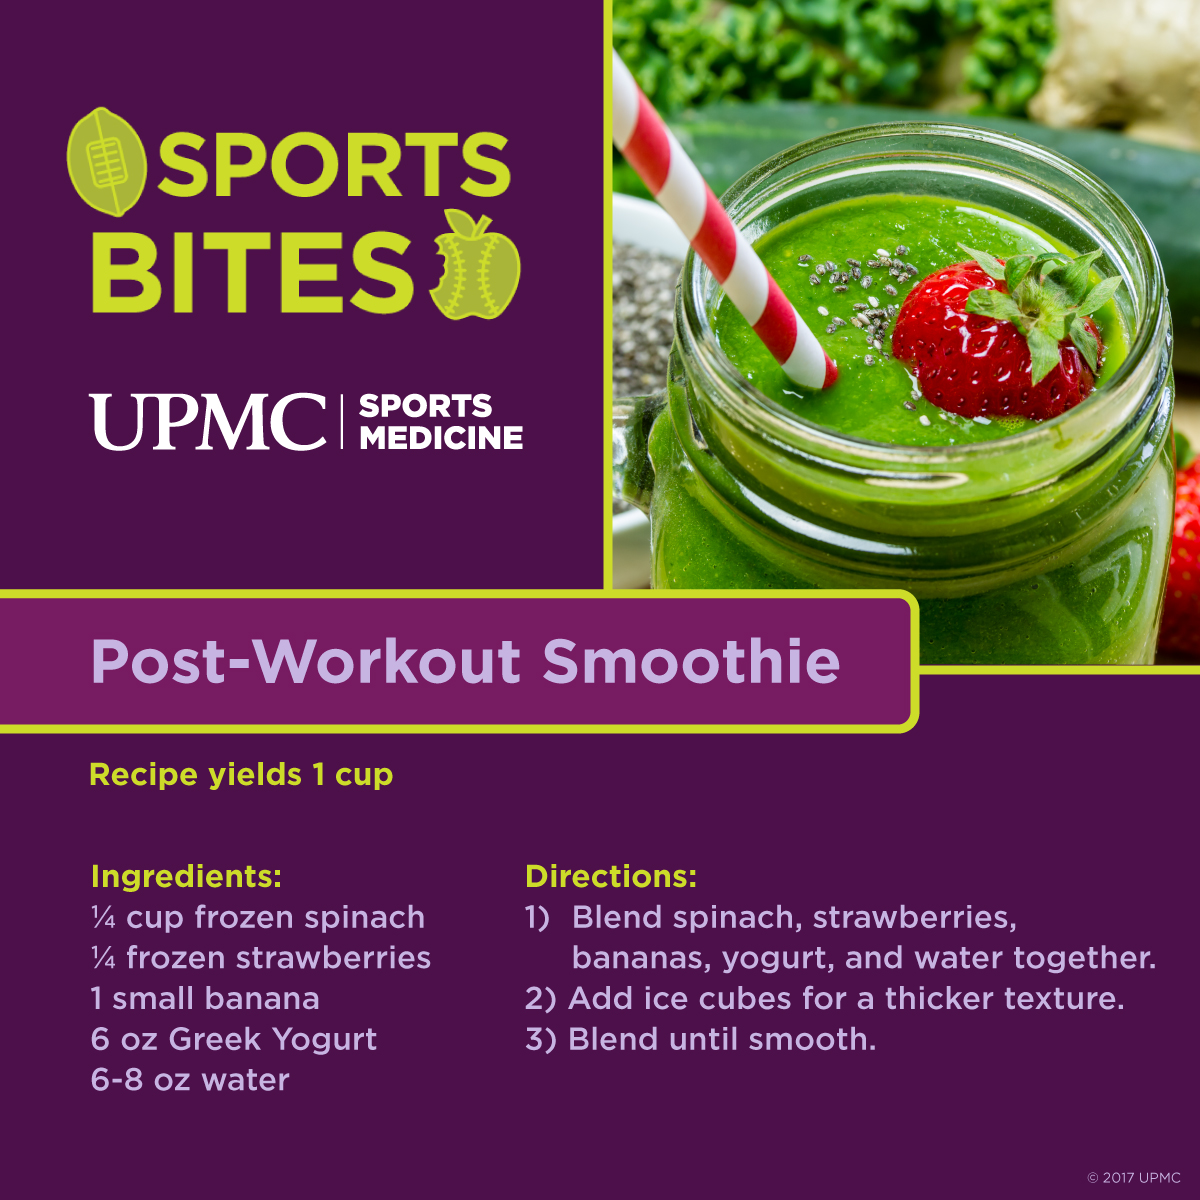 Learn how to make this post-workout smoothie